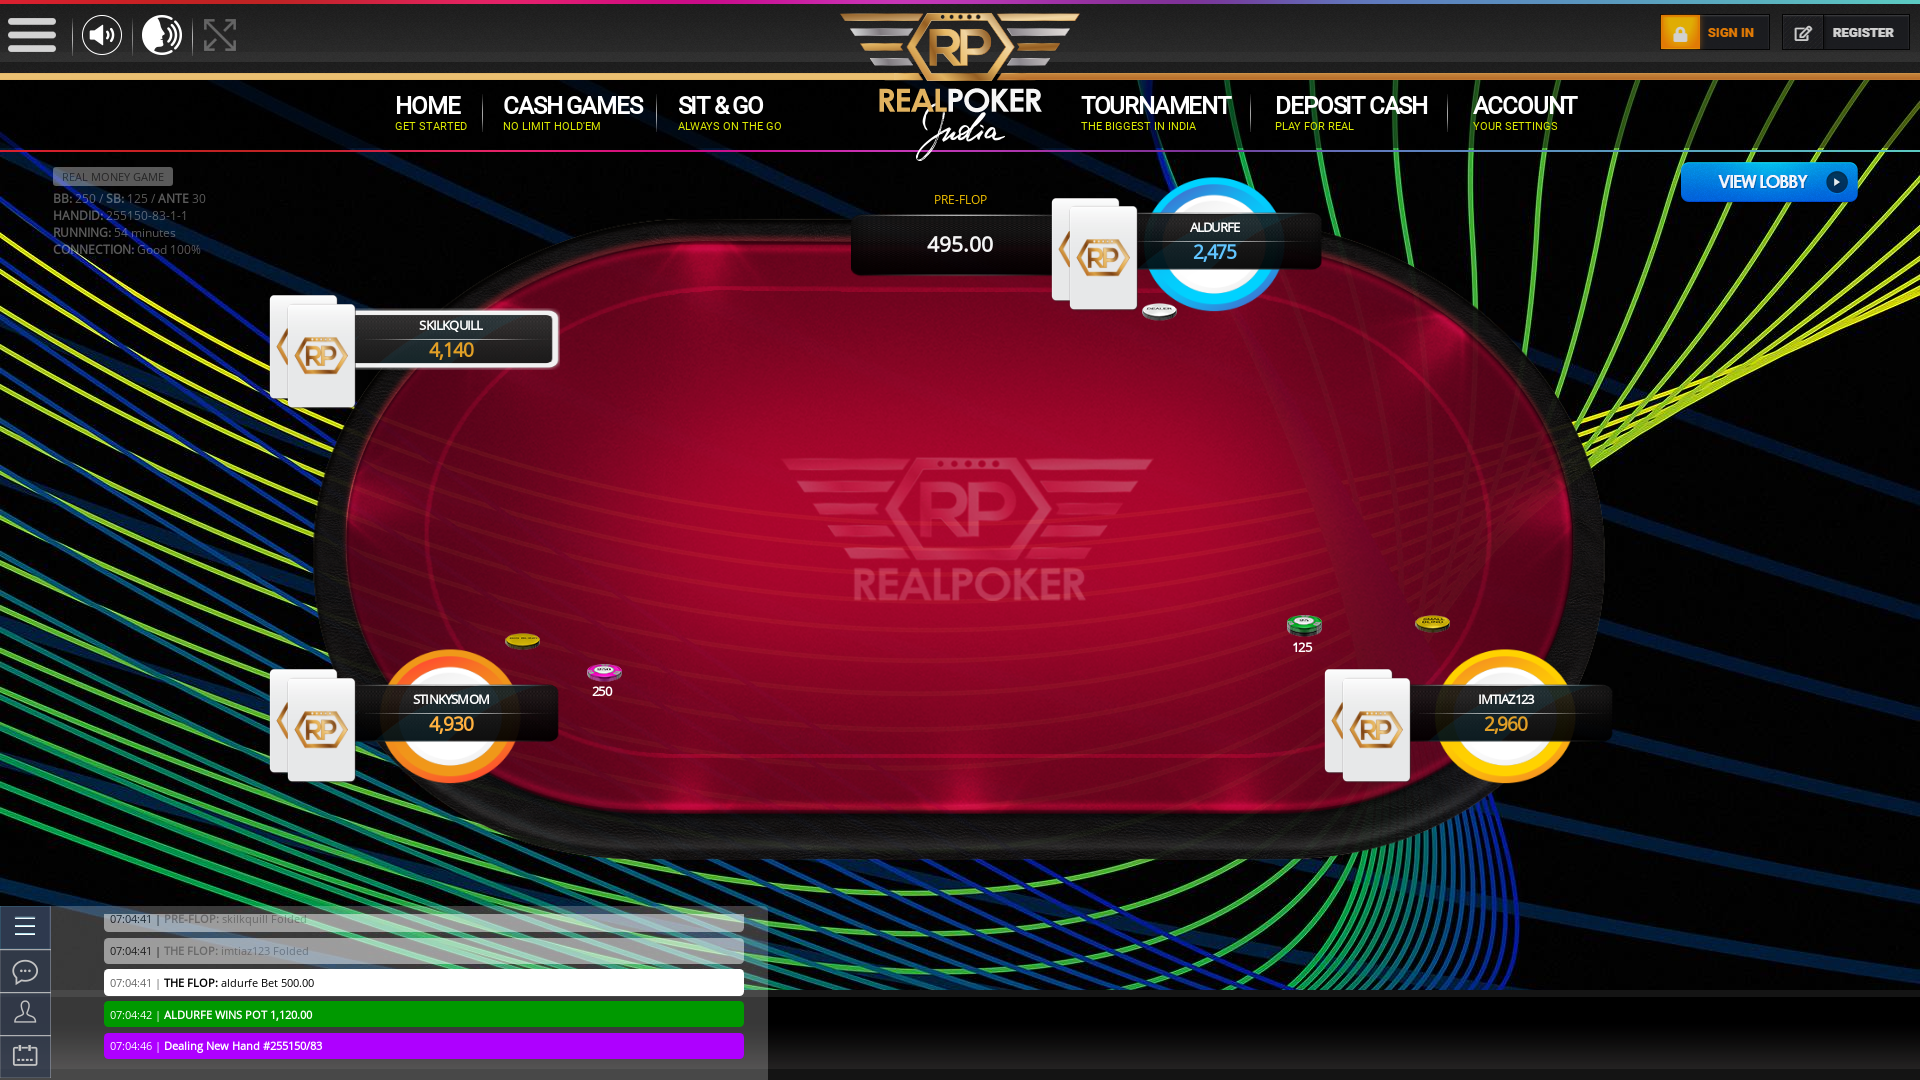 The 82nd hand dealt between skilkquill, aldurfe, stinkysmom, imtiaz123,  on poker india